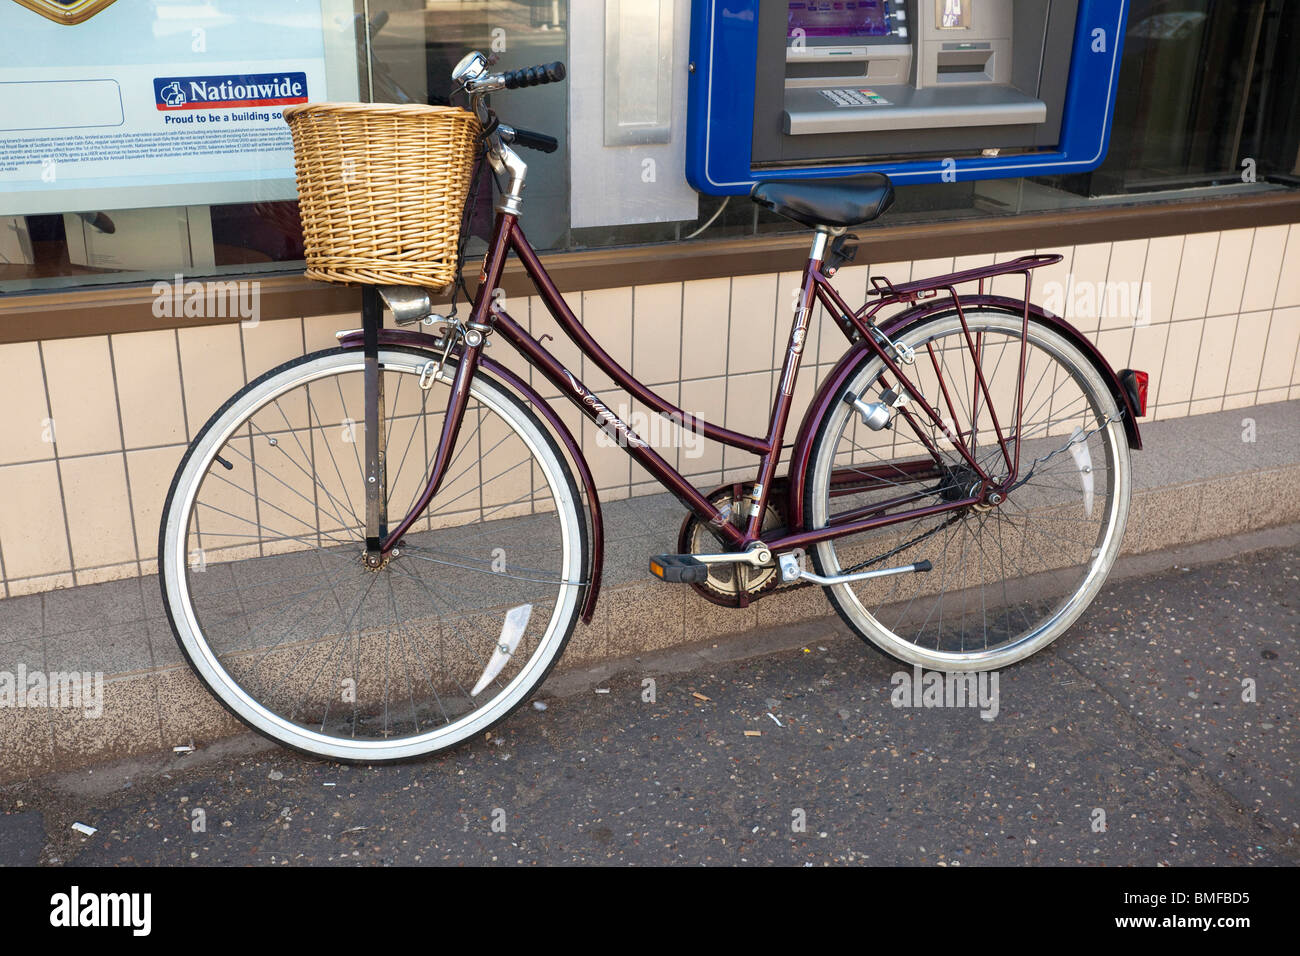 bicycle parked on pavement - Stock Image